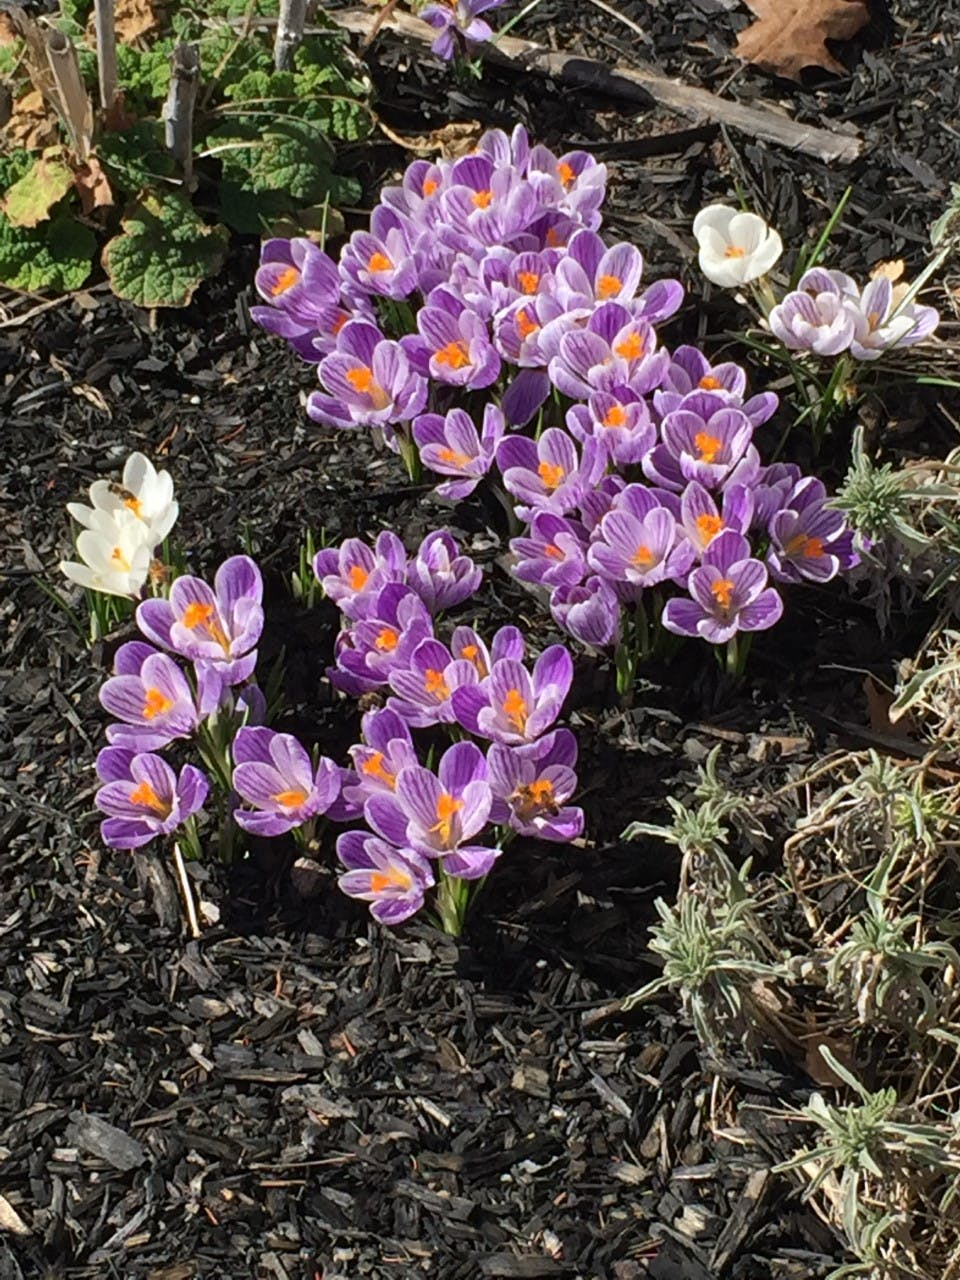 """It looks like spring is settling in nicely in Port Williams, N.S. Connie Millett sent this photo of some newly sprouted spring flowers when she was out and about last week.  She wrote: """"... the temperature was about 15 degrees.  The bees were buzzing around them so I had to be careful."""" Thank you for sharing, Connie."""